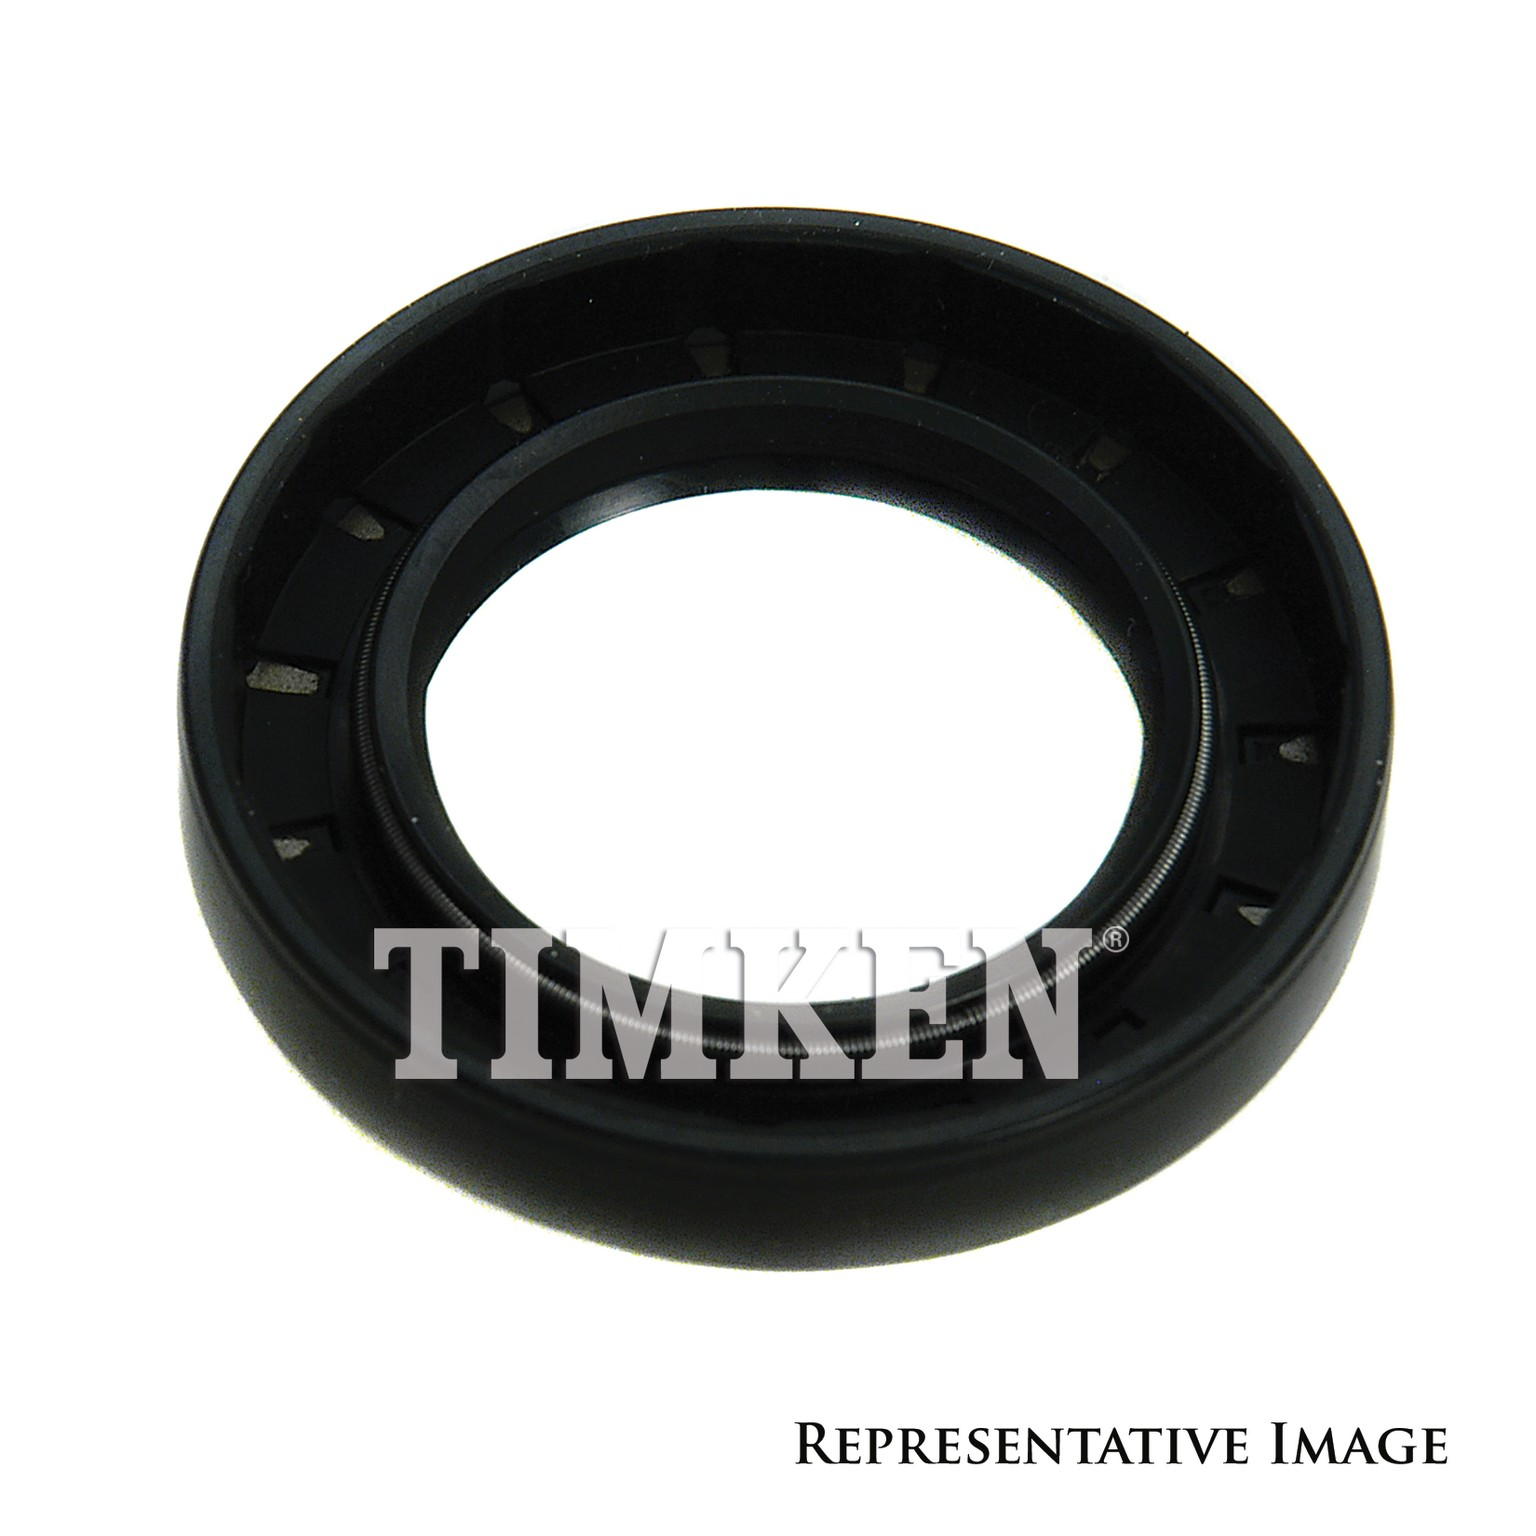 1997 Honda Civic del Sol Manual Transmission Output Shaft Seal TM 2007N ...